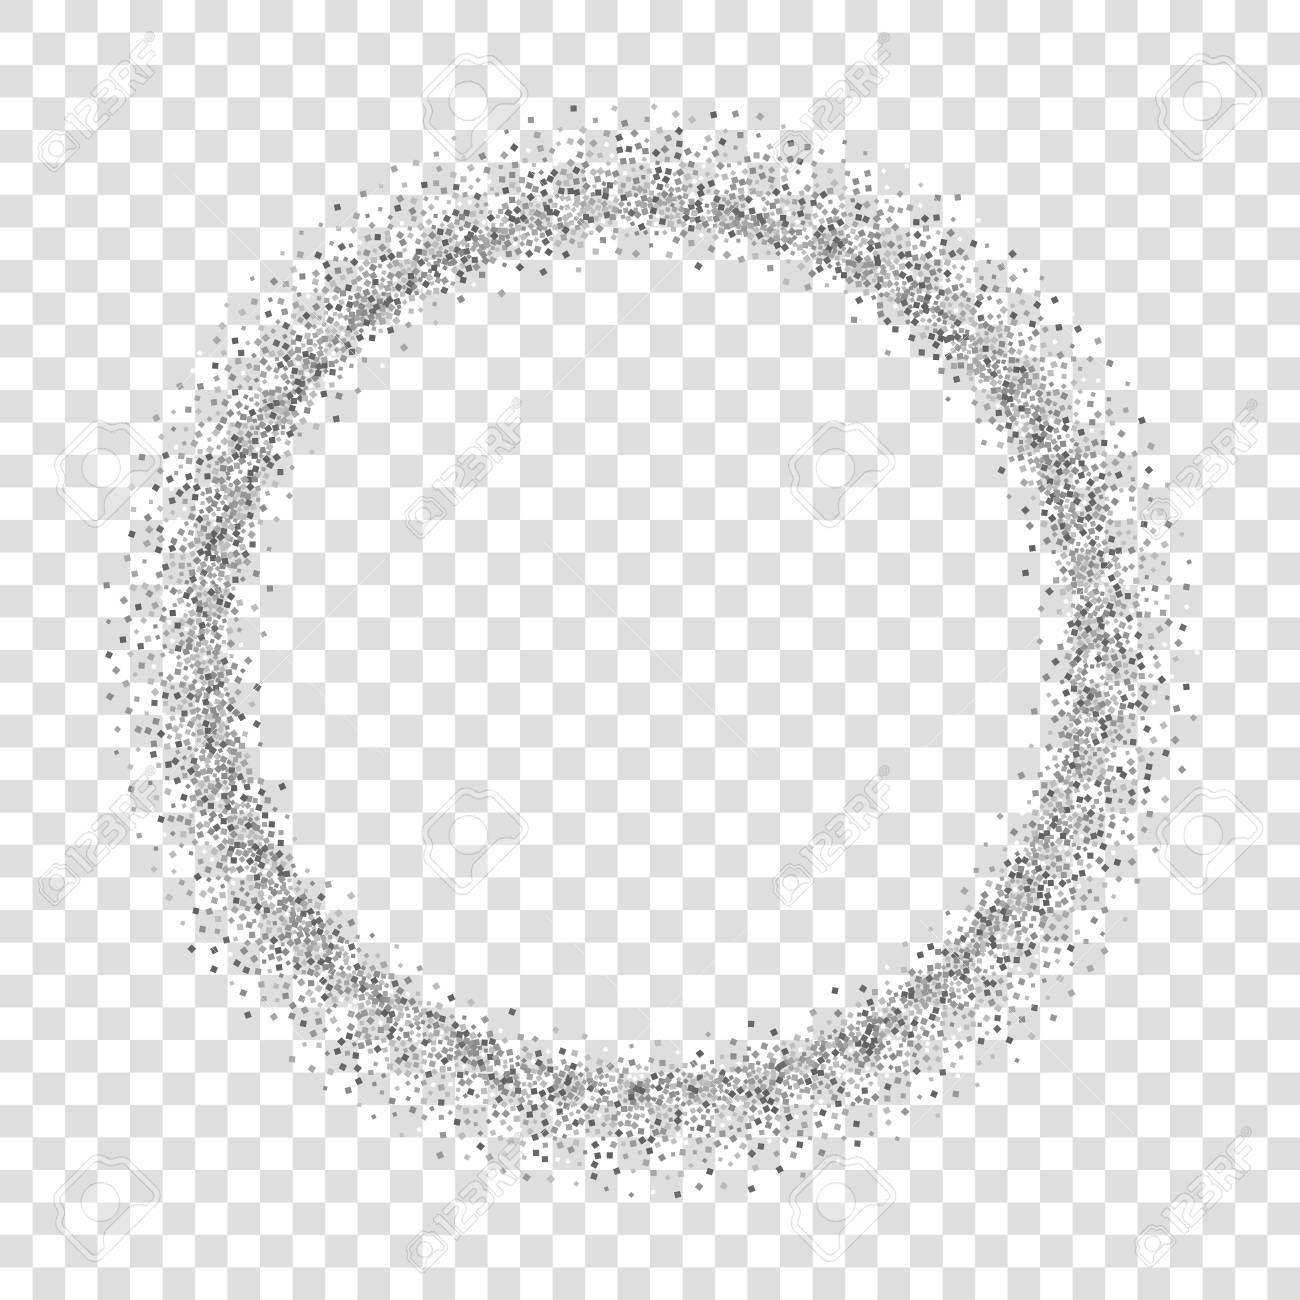 Circle Border Transparent - Silver Circle Isolated White Transparent Background. Round Frame ...